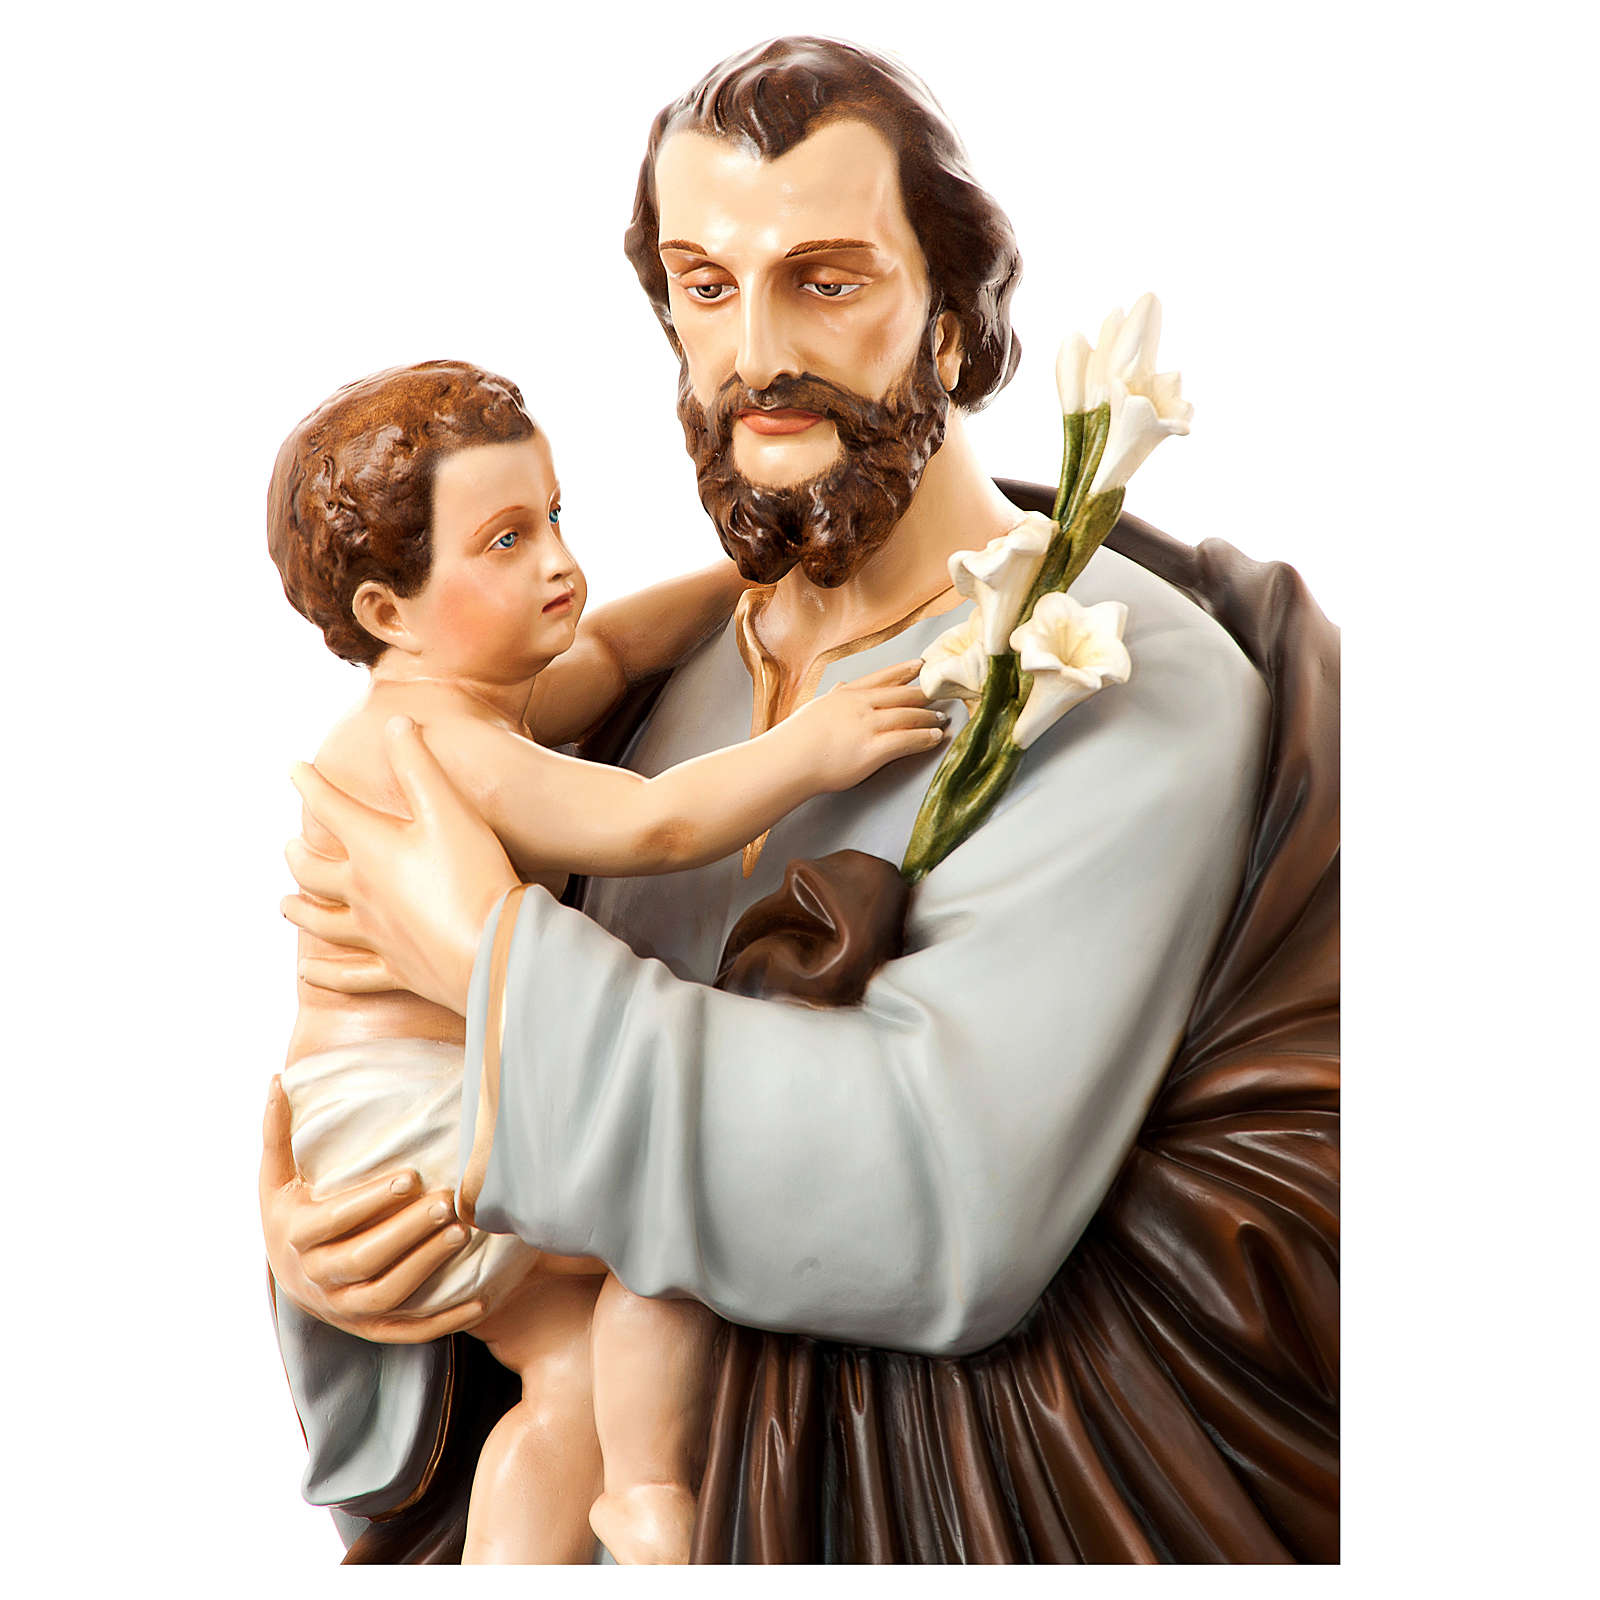 Statue of St. Joseph with child in painted fibreglass 175 cm for EXTERNAL USE 4